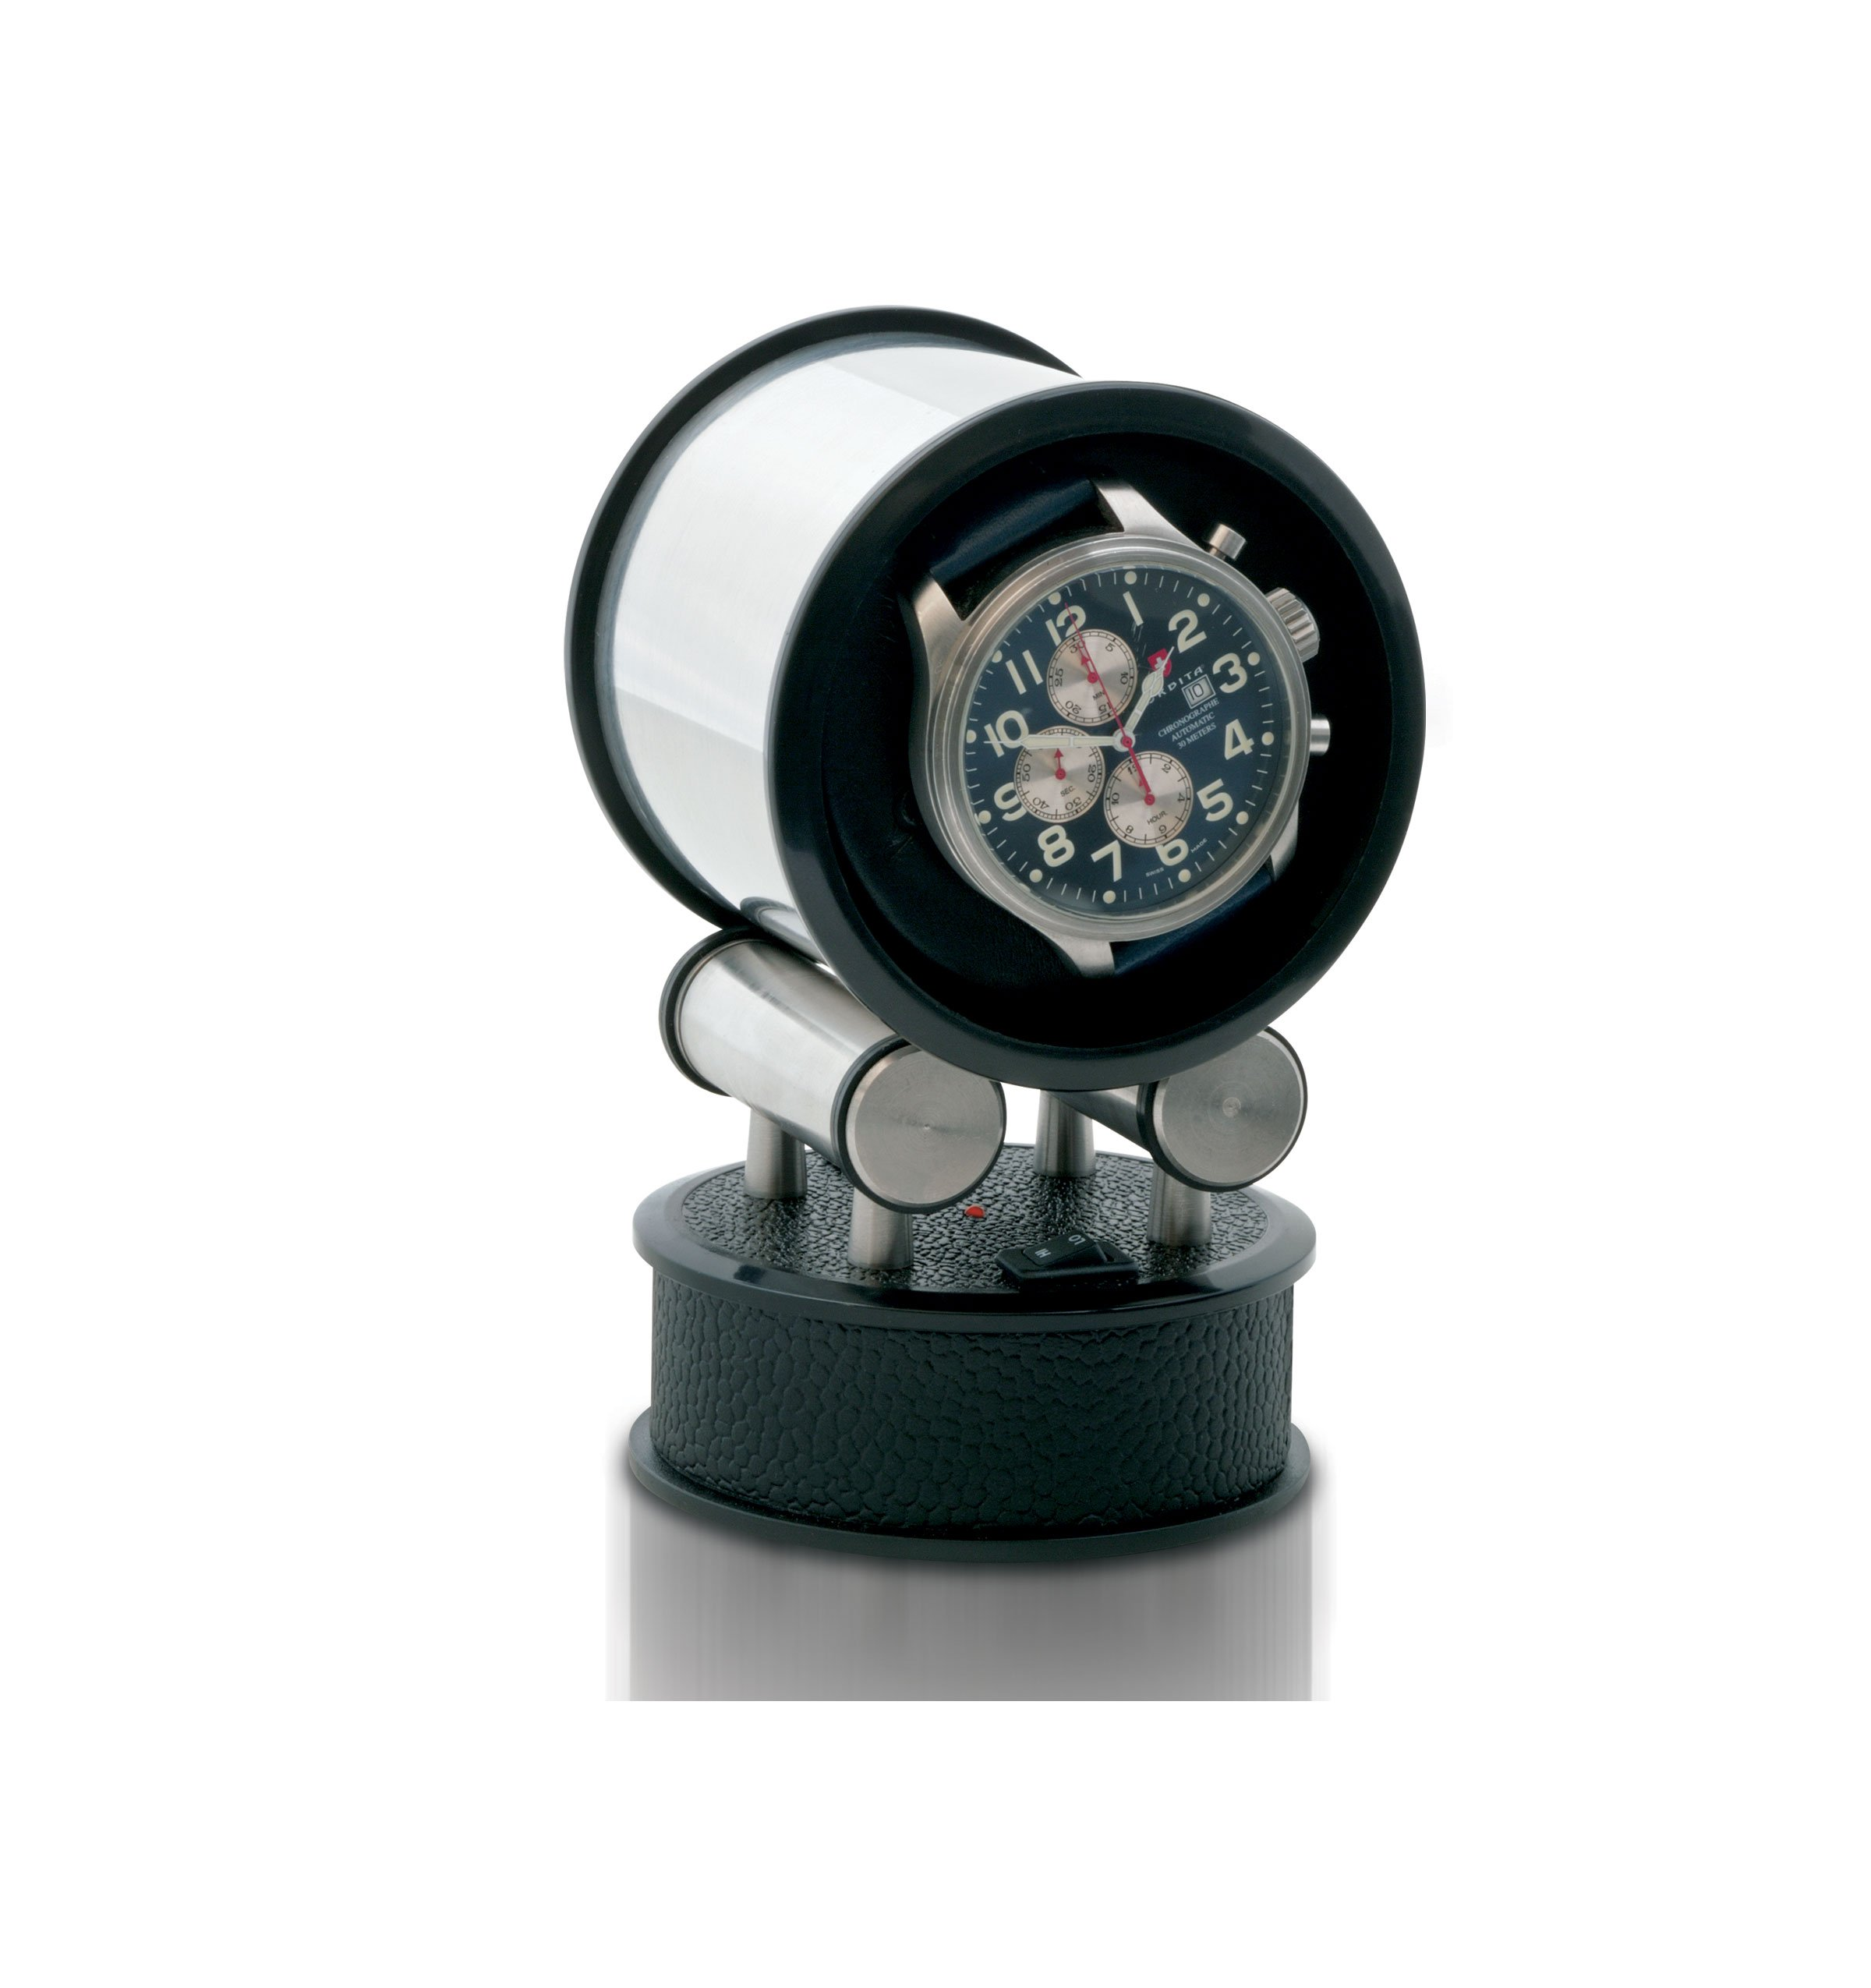 Voyager 1 Watch Winder with Leather Traveling Case by Orbita by Orbita (Image #1)